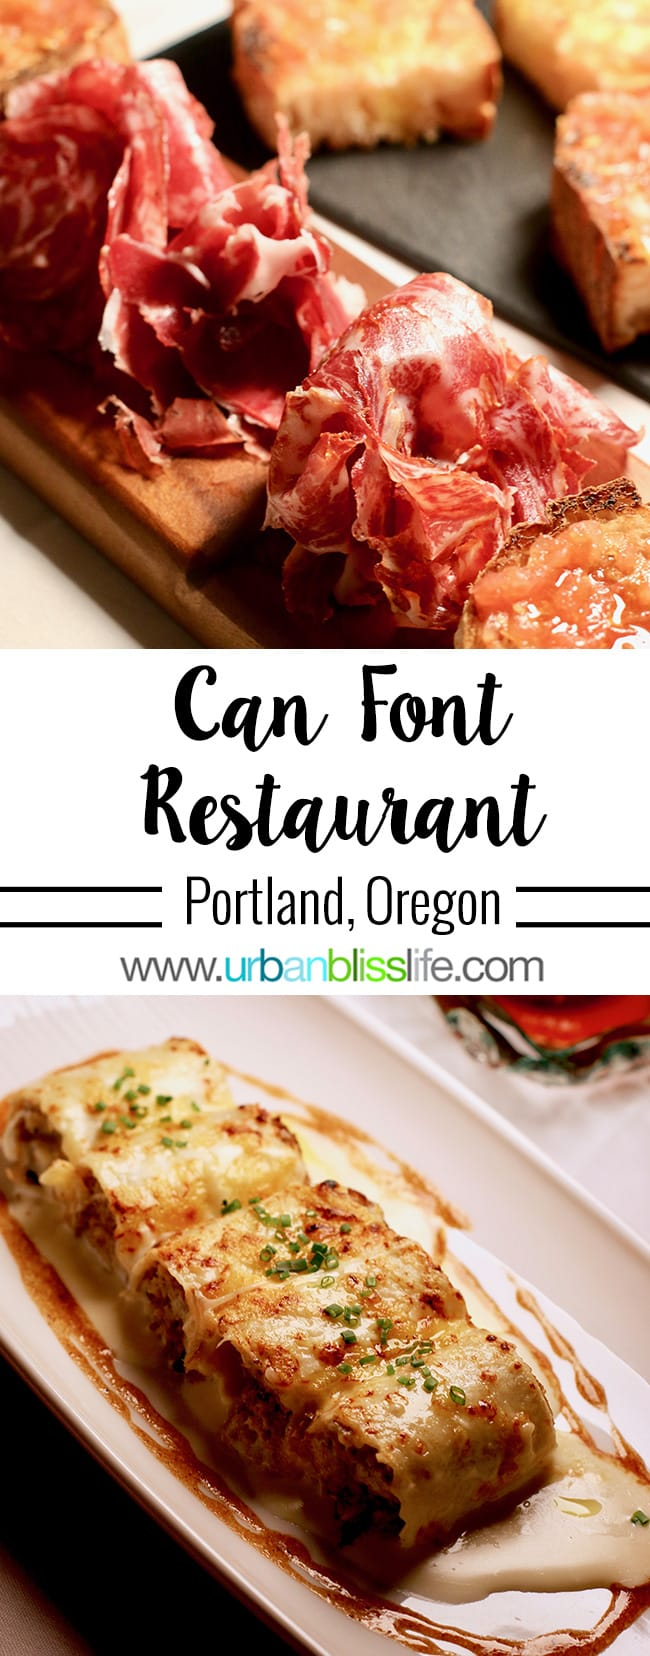 Can Font Portland: Catalan Cuisine in Portland, Oregon.